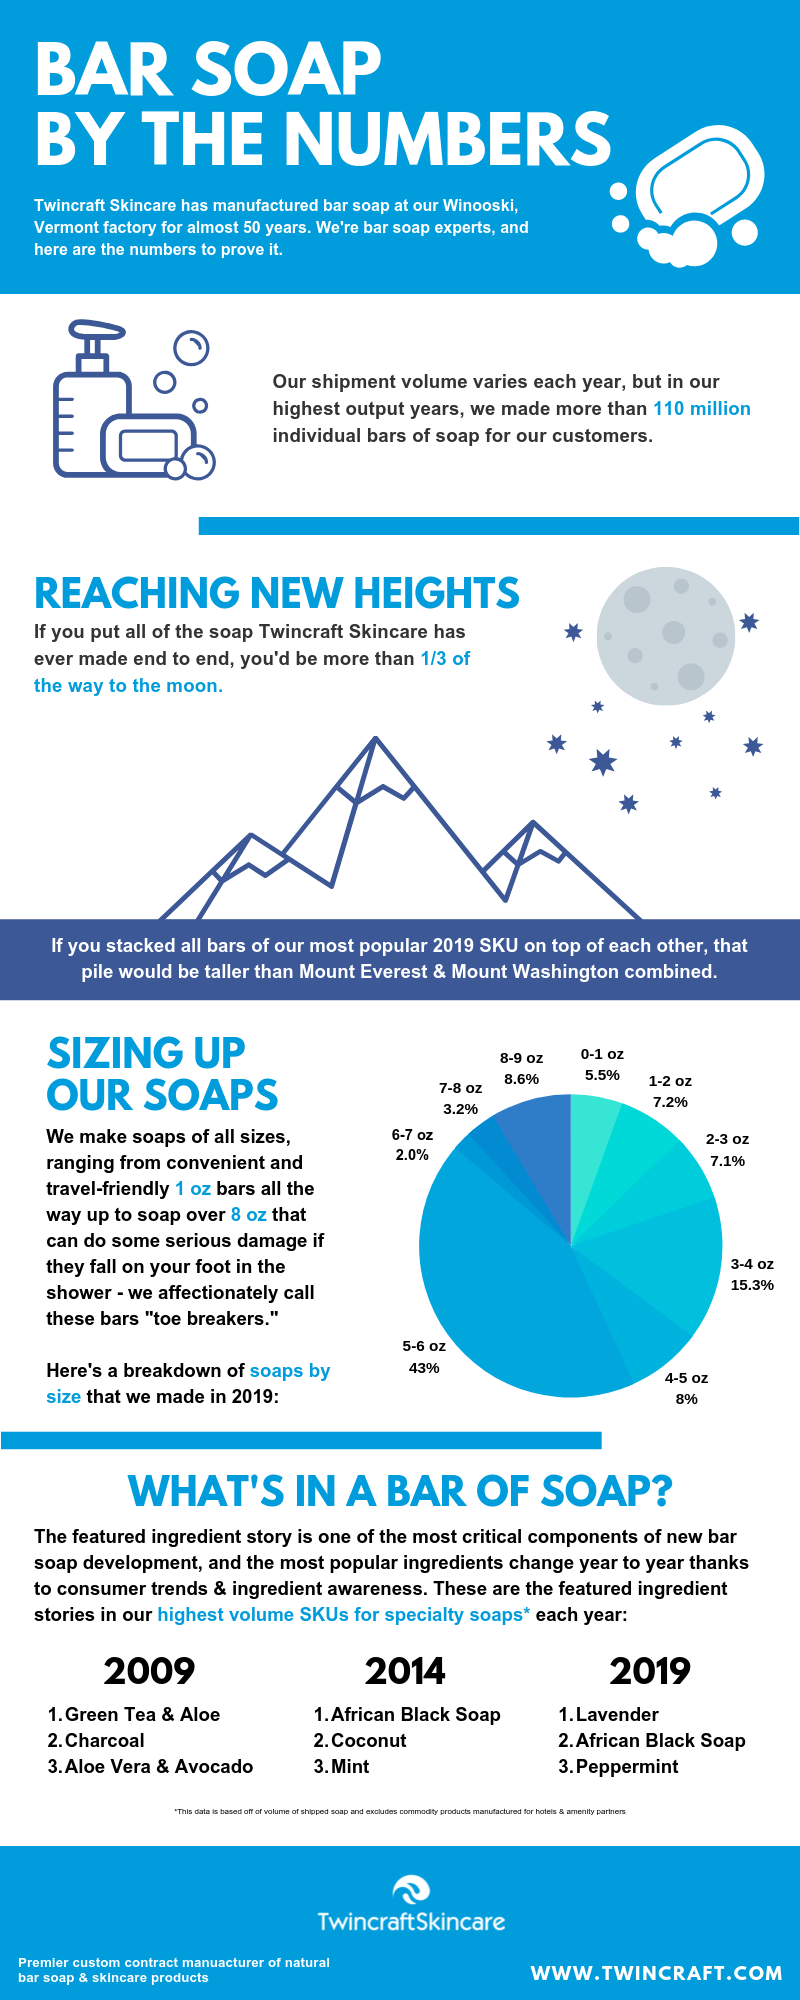 Twincraft Skincare Bar Soap By the Numbers